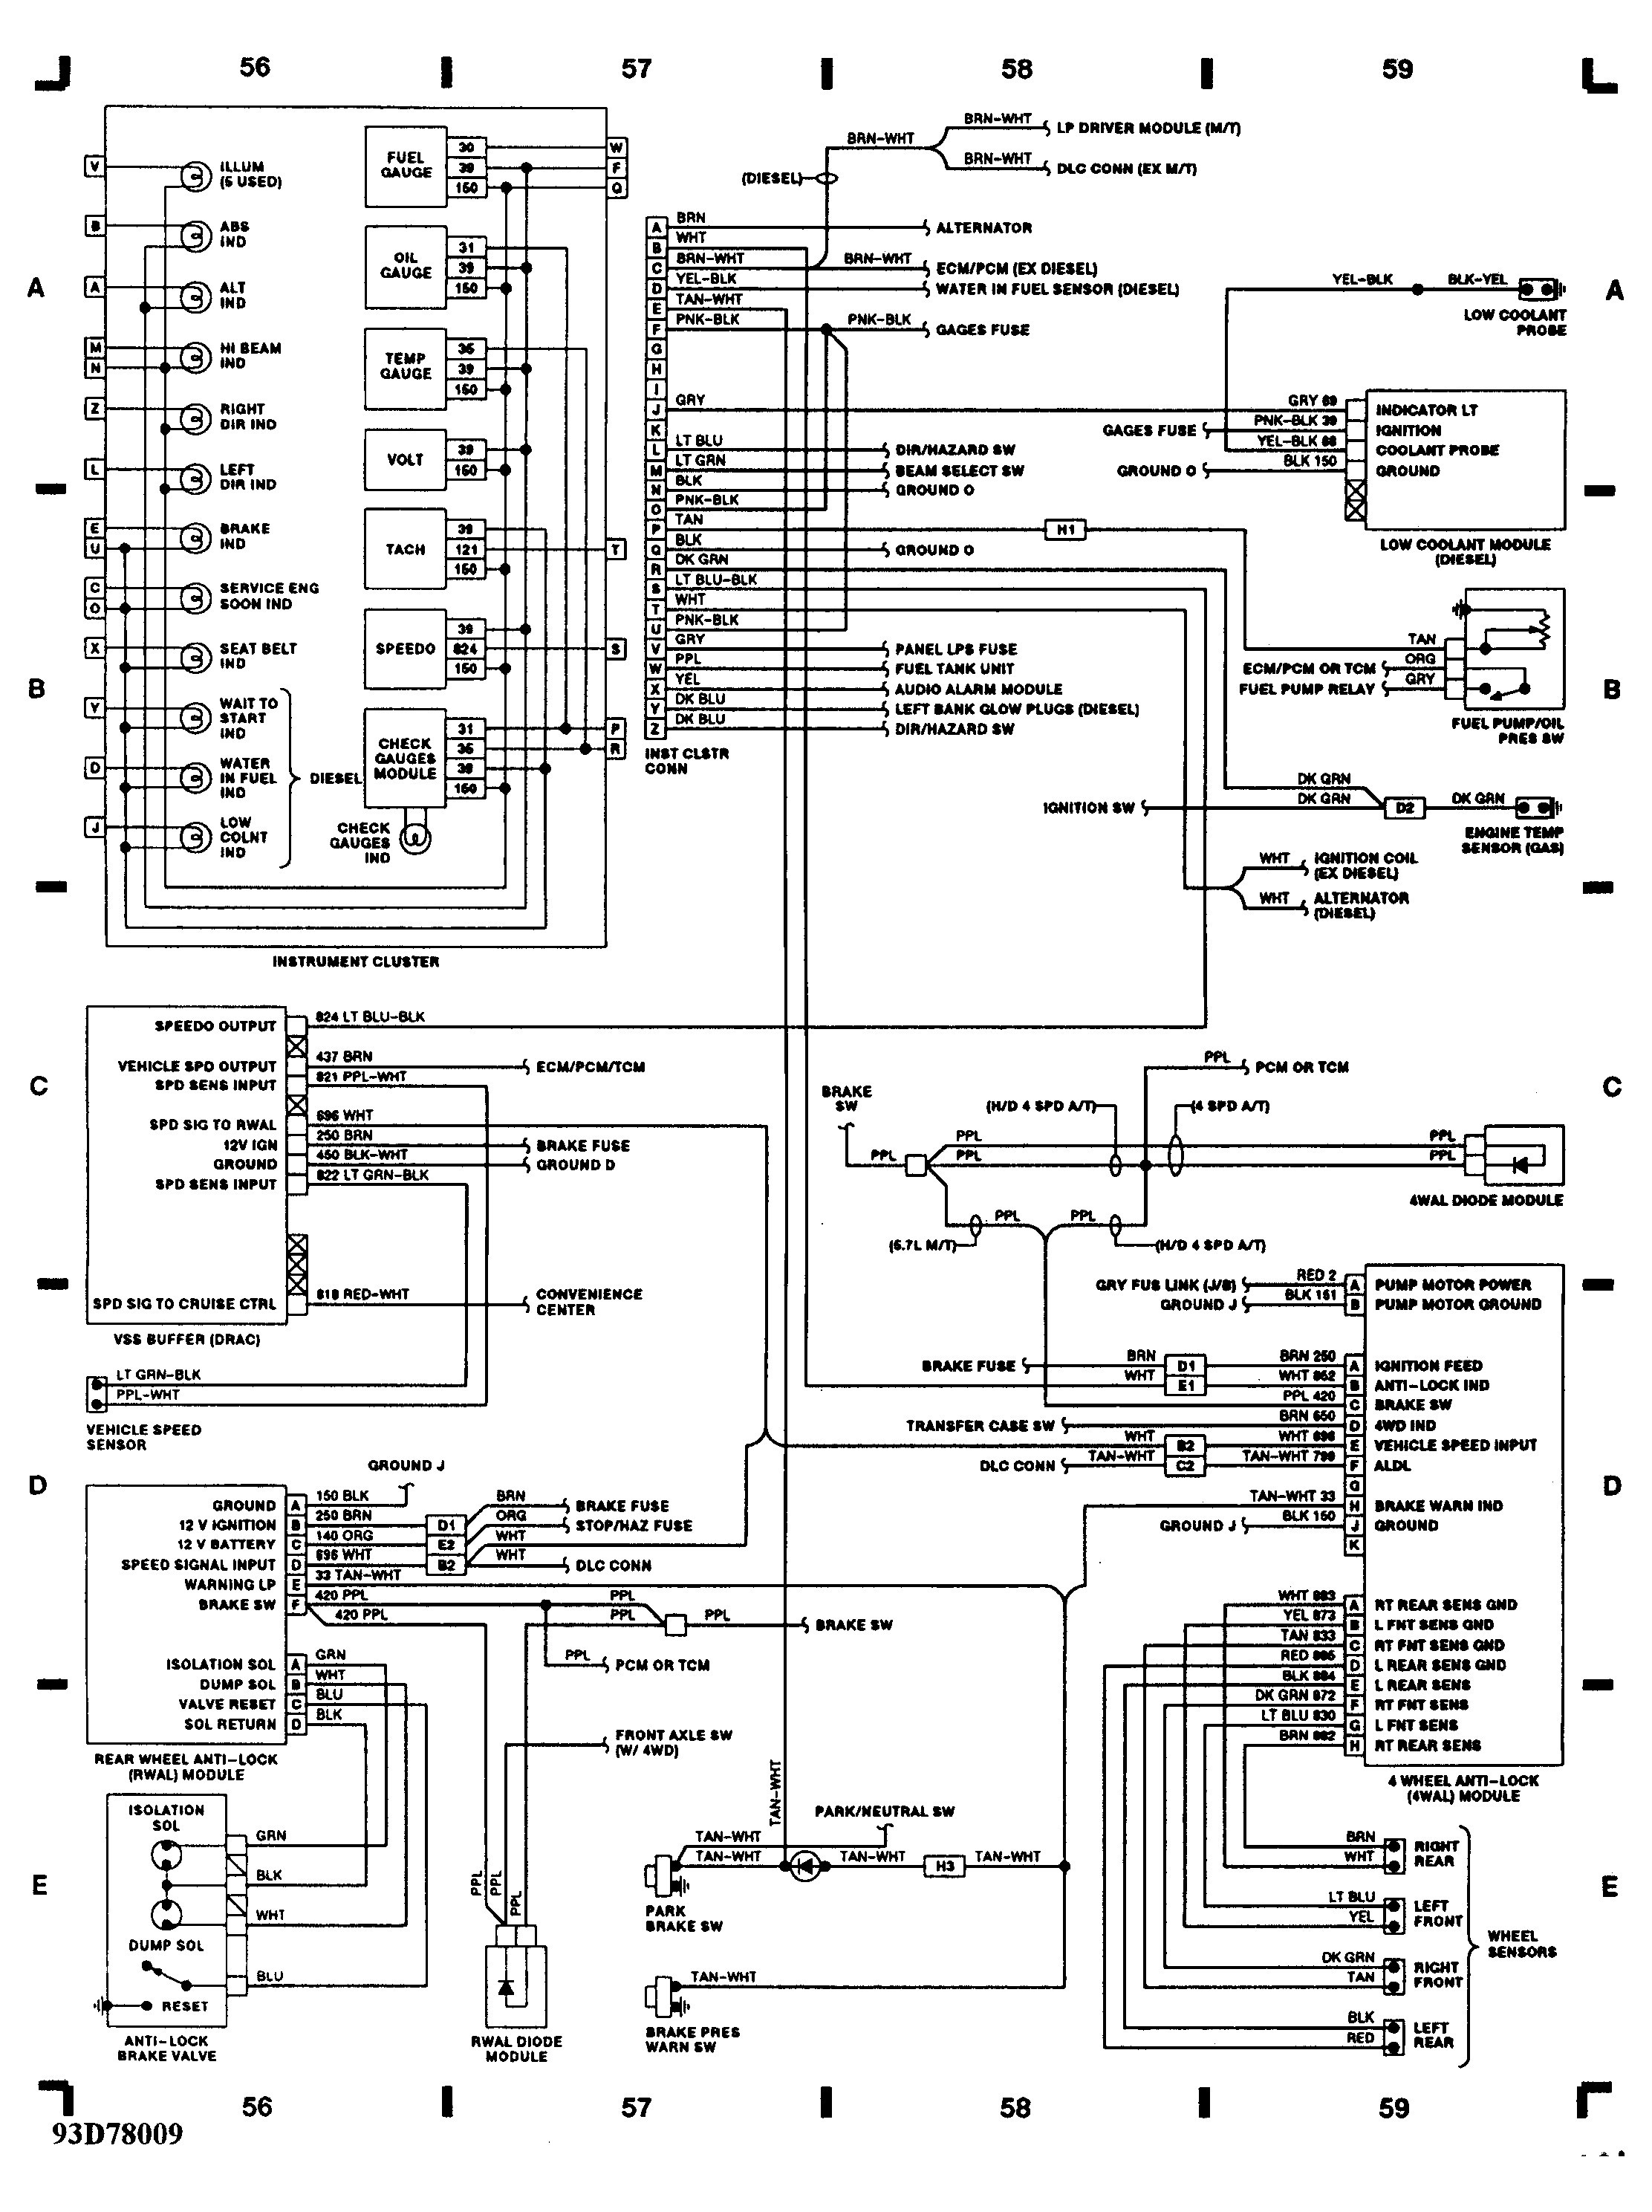 Chevy 350 Wiring Harness | Wiring Diagram on